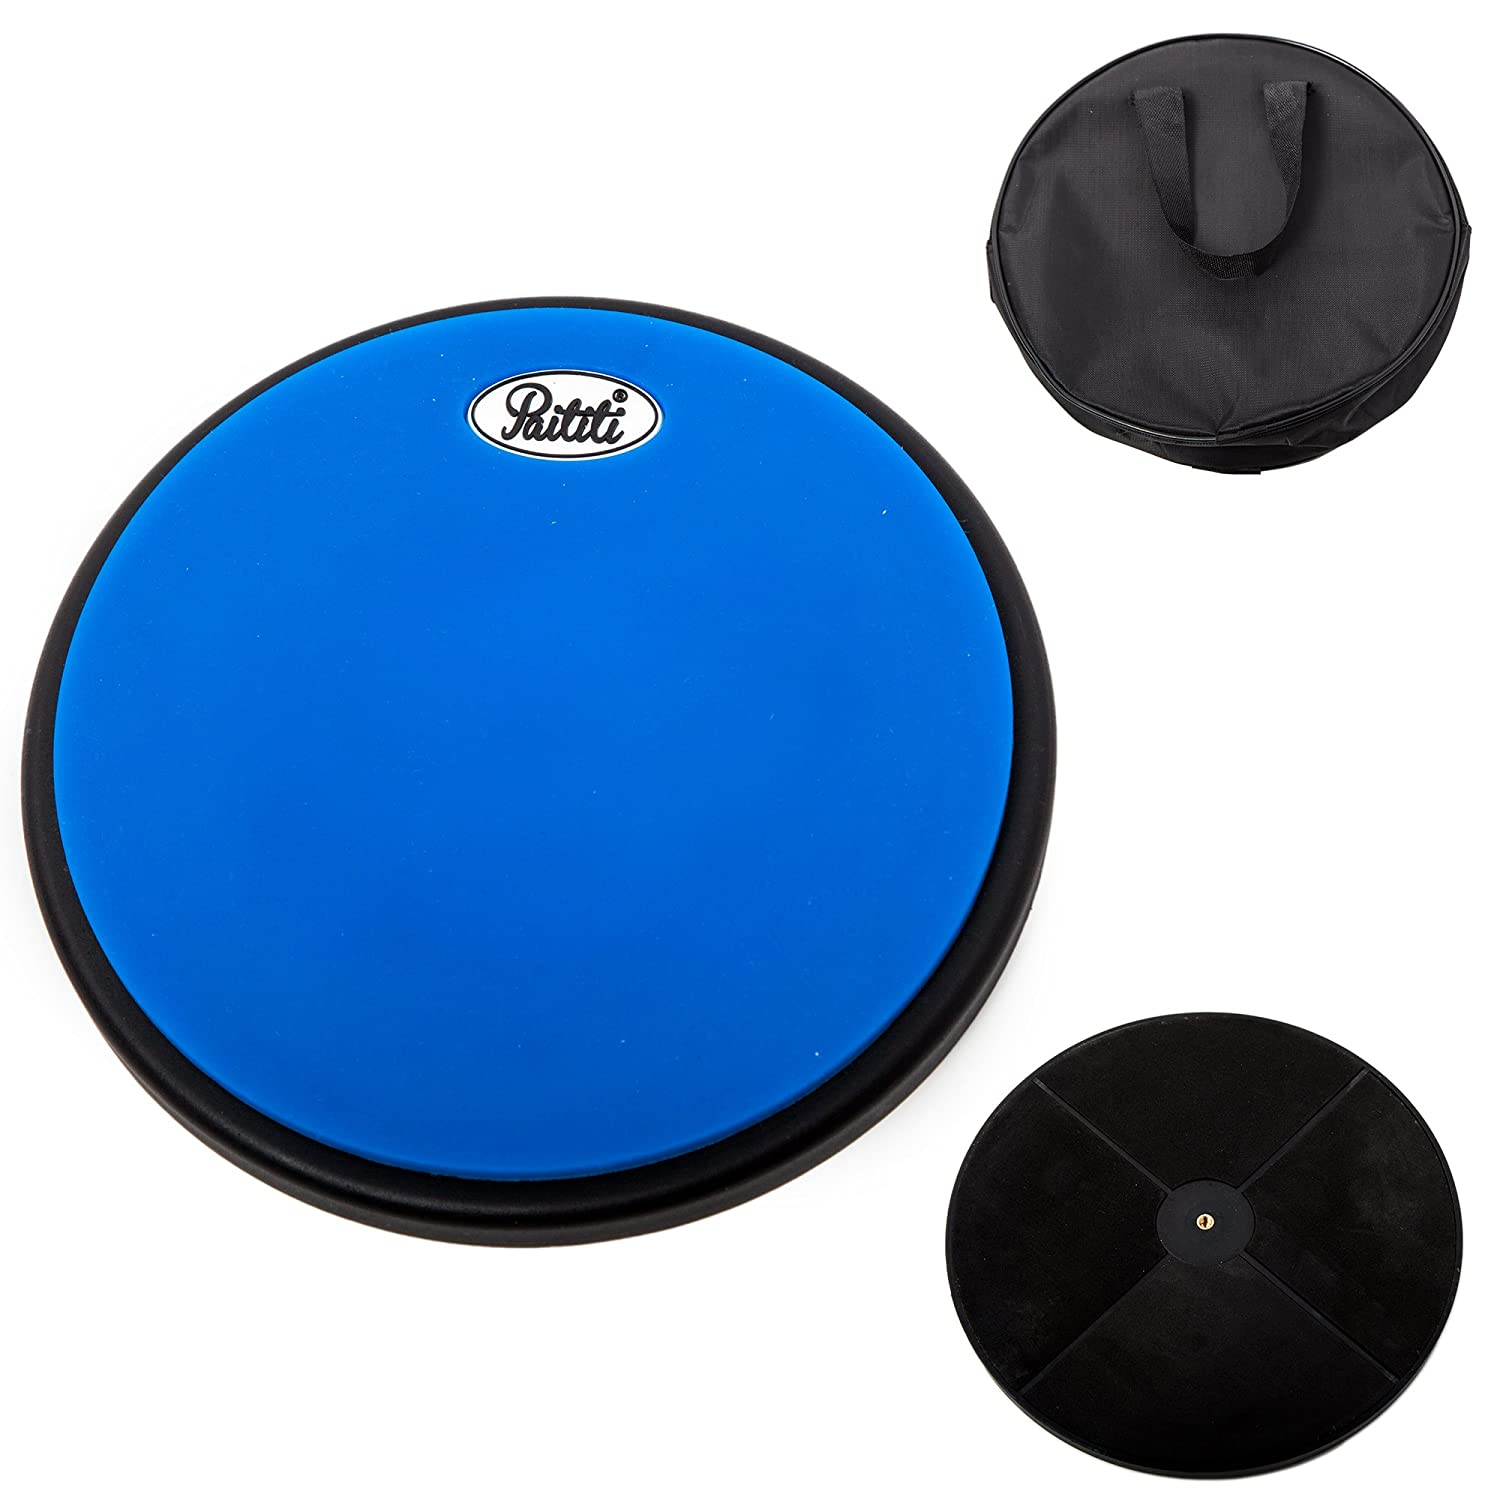 PAITITI 8 Inch Silent Portable Practice Drum Pad Round Shape with Carrying Bag Blue Color Sky Music PTTDMPD201-BL